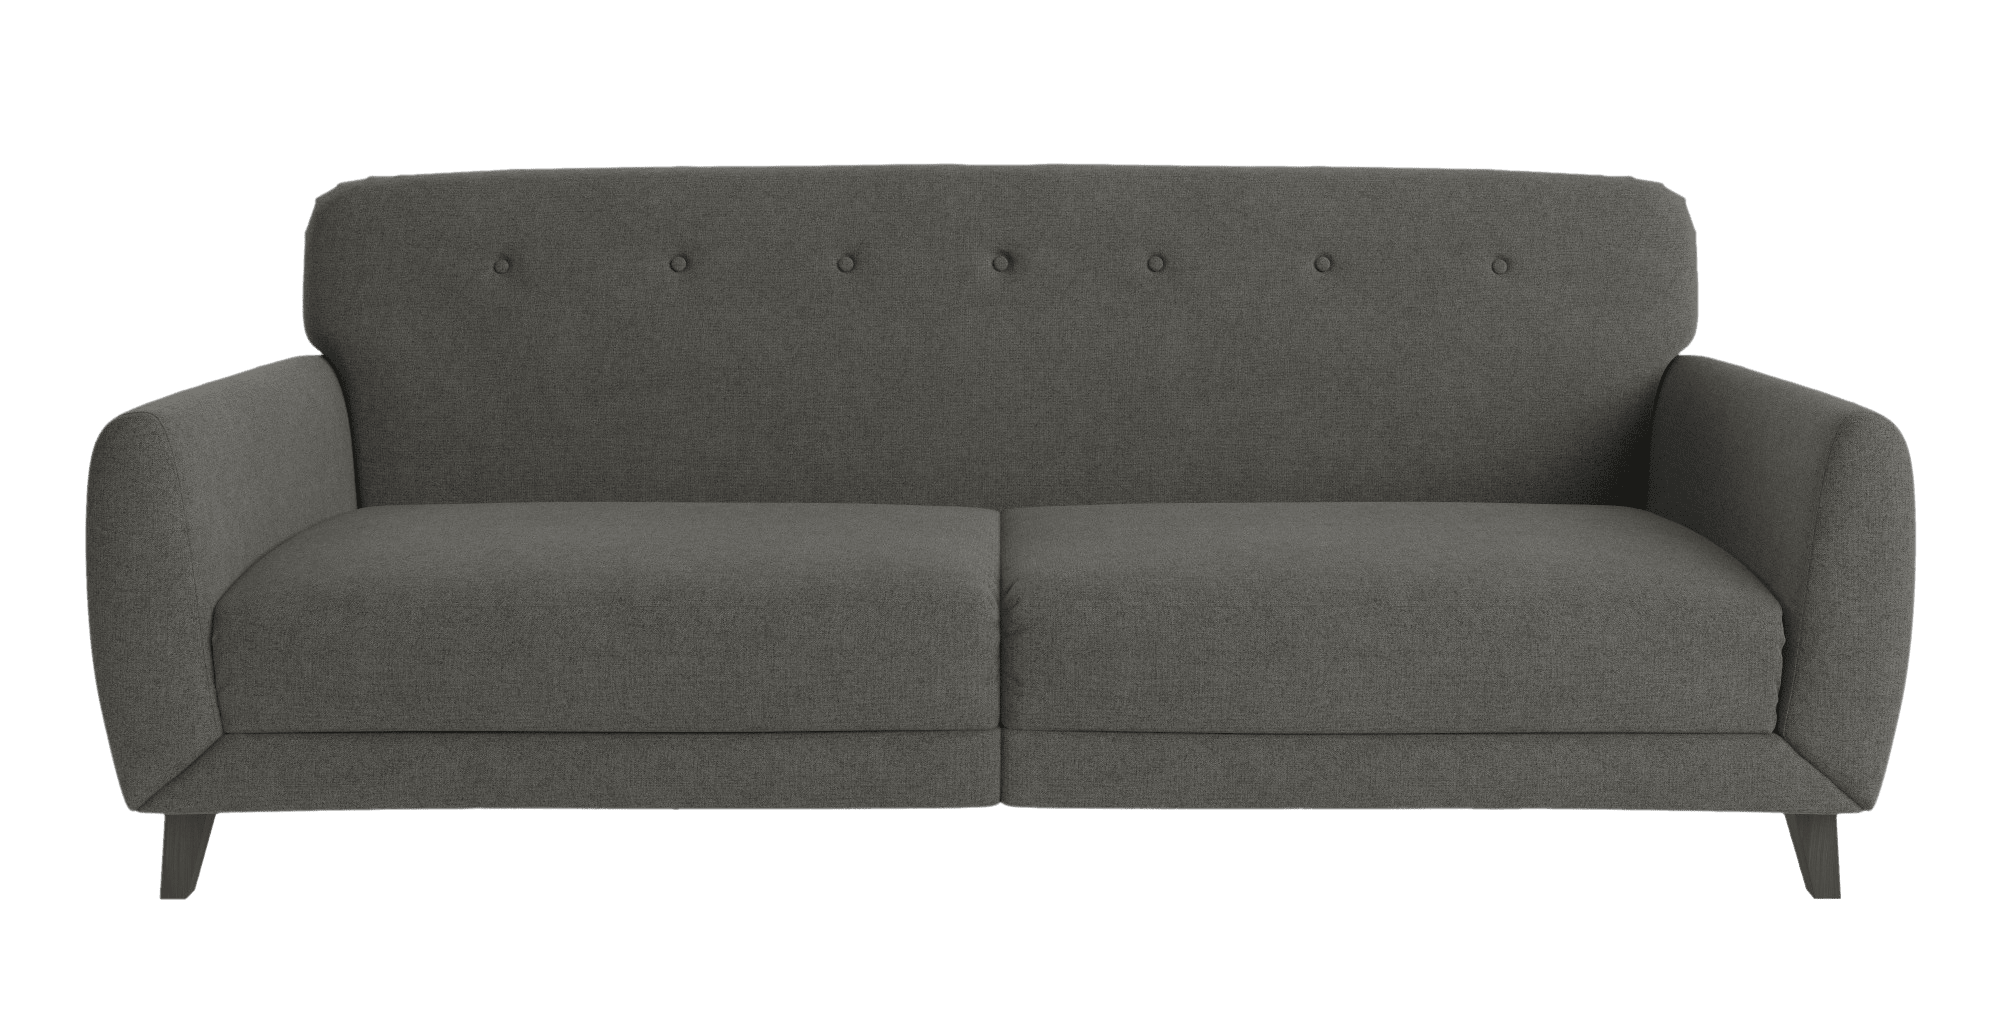 Sleeper Sofa PNG Free Download SVG Clip arts